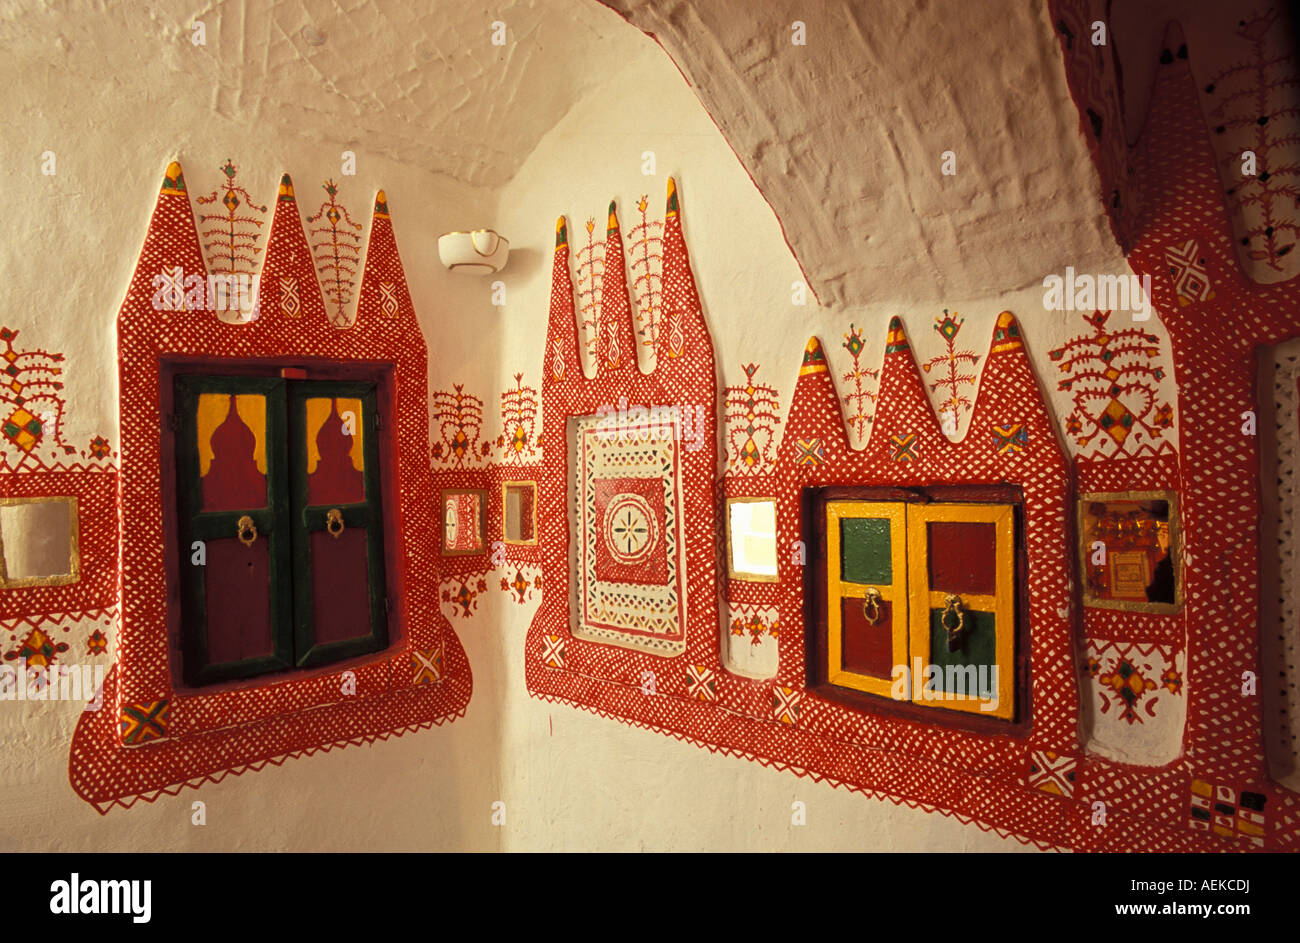 Libya Ghadames House with painted walls - Stock Image